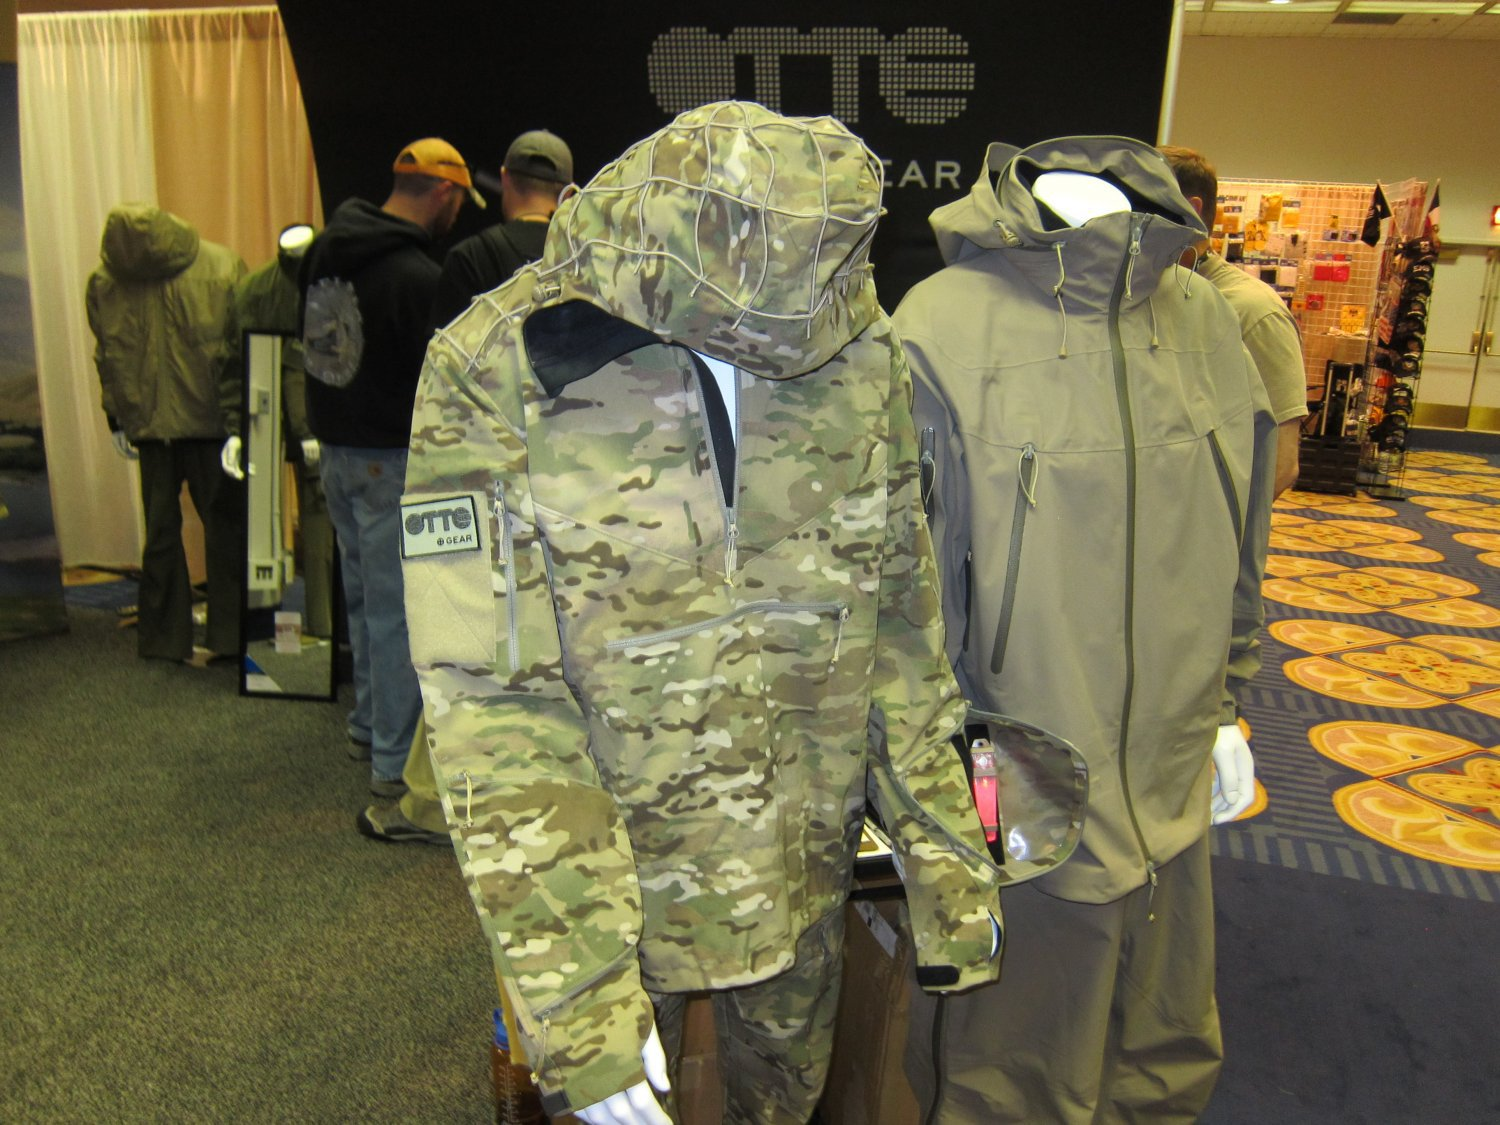 <!--:en-->OTTE Gear Recce/Overwatch Anorak: High-End, High-Tech Tactical/Combat Soft Shell Hoodie Sniper Jacket (Pullover Type) with Crye MultiCam Camouflage Pattern and Ghillie Platform for Snipers, Recce Operators/Assaulters and Civilian Tactical Shooters<!--:-->